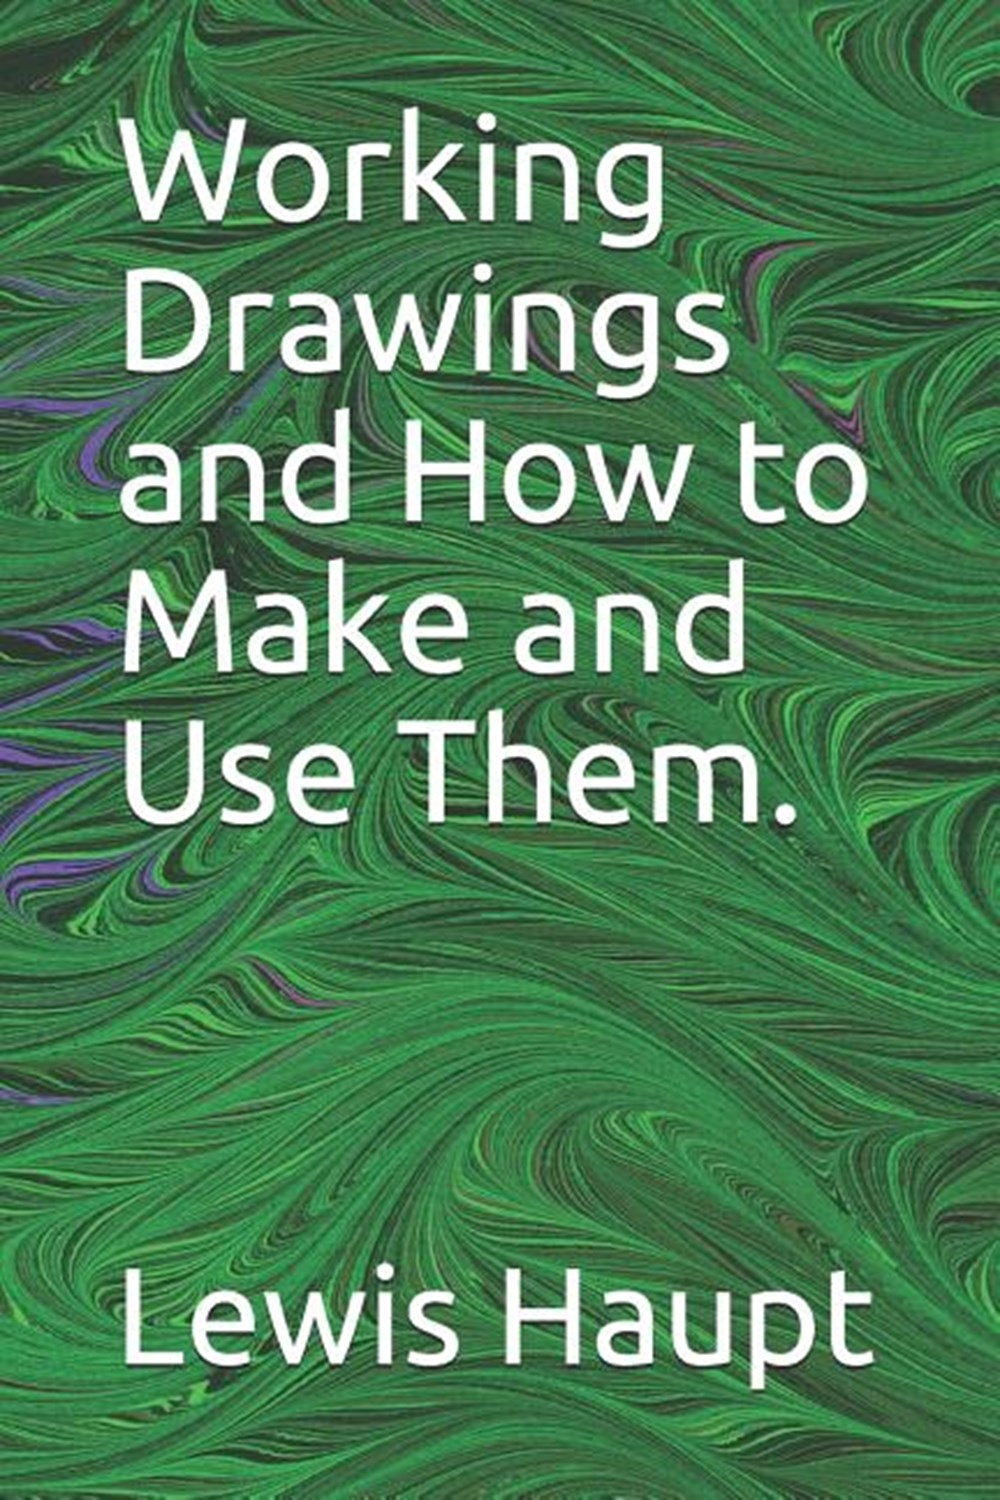 Working Drawings and How to Make and Use Them.